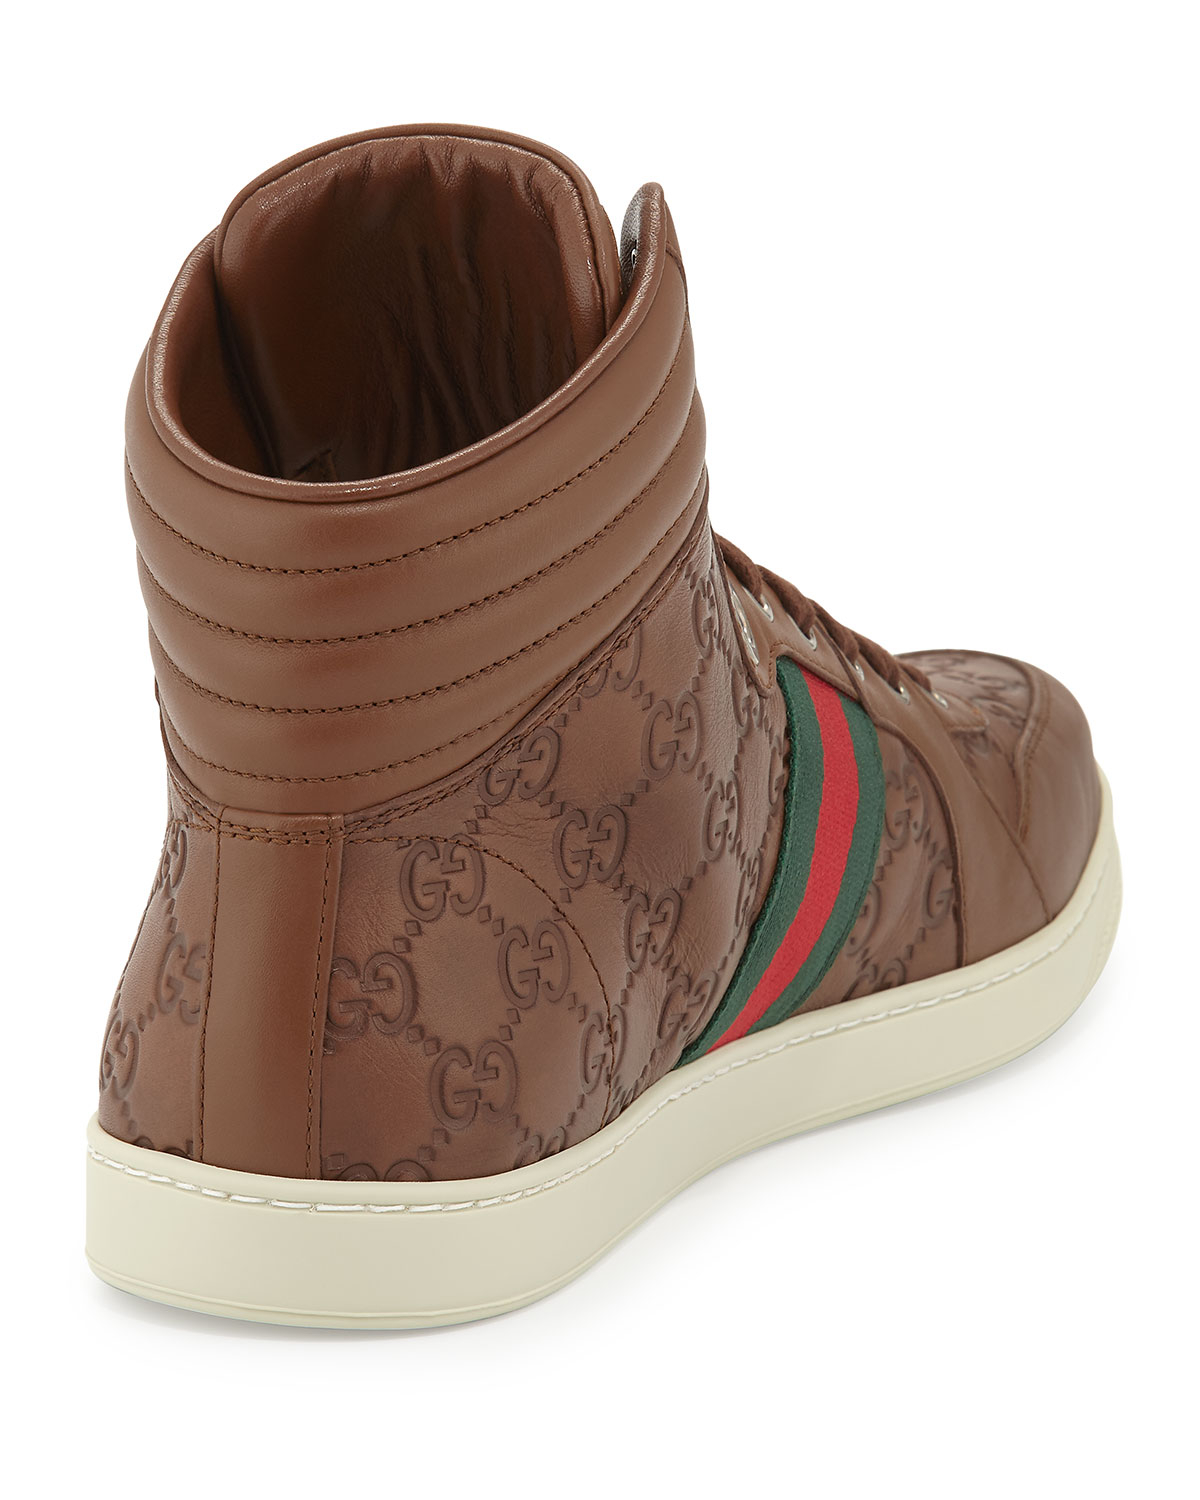 691261db2 Gucci Leather High-Top Sneakers in Brown for Men - Lyst